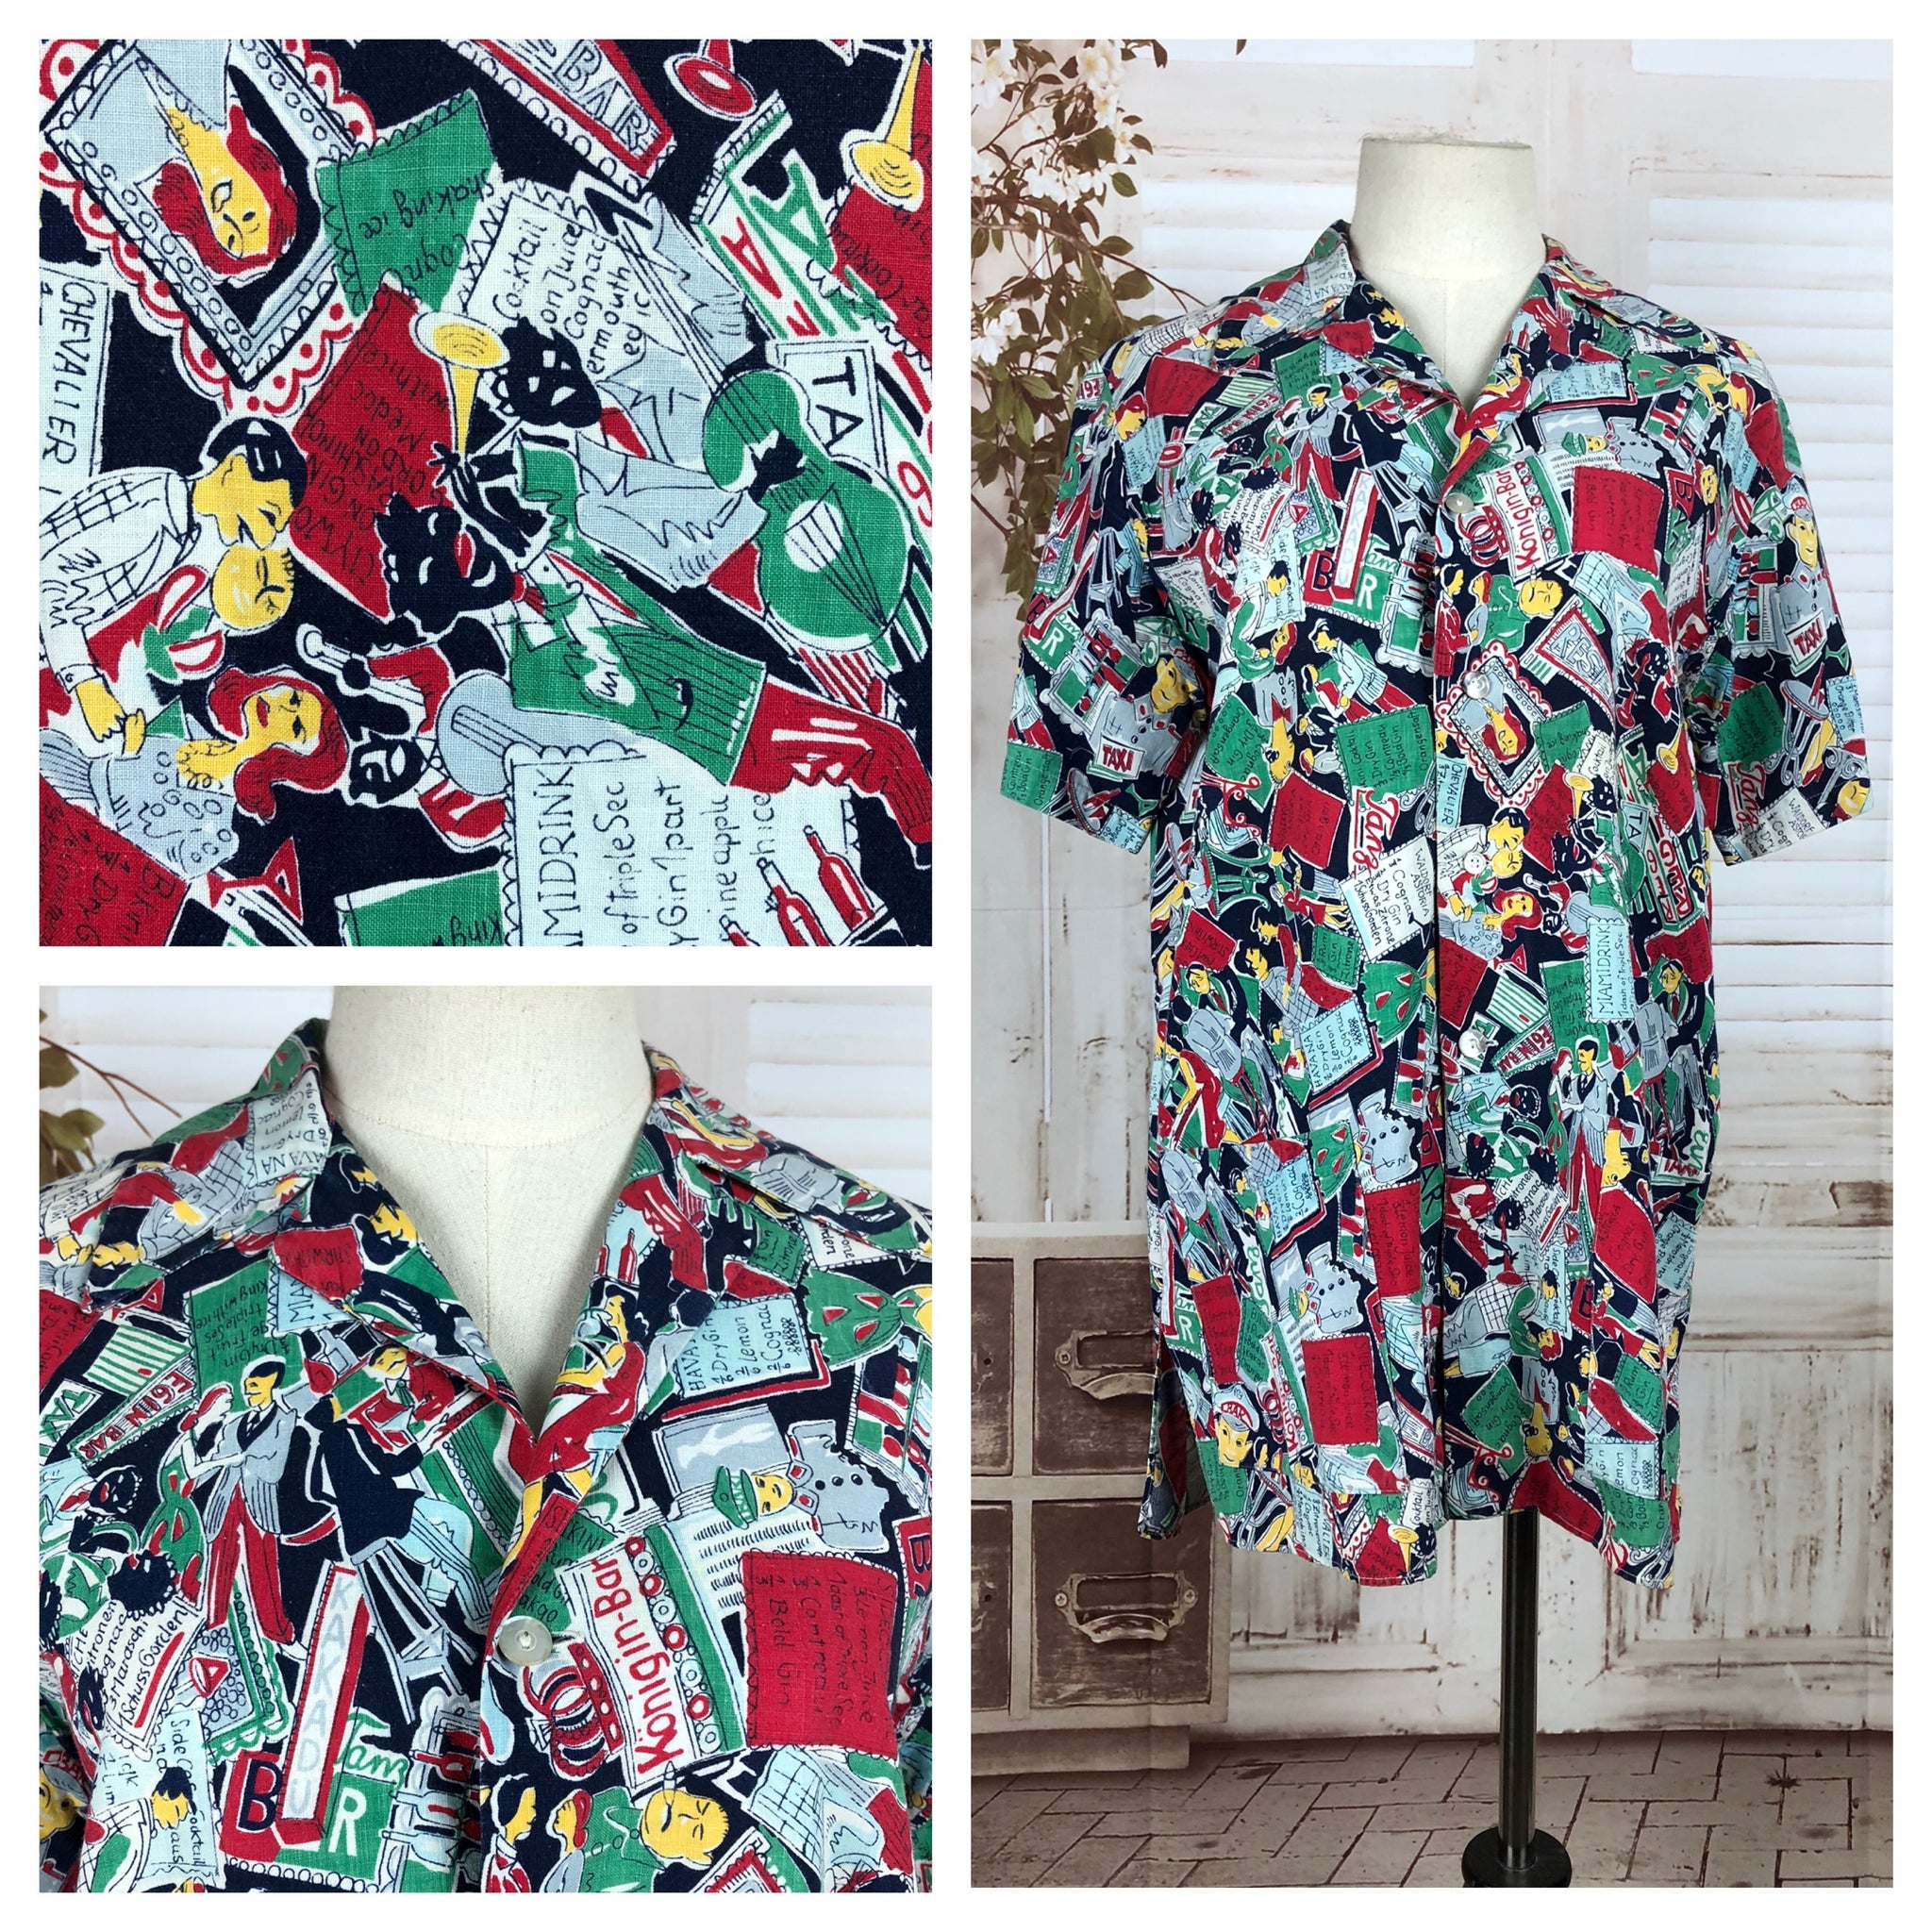 Original 1950s 50s Vintage Novelty Print Smock Blouse With Bar And Cocktail Theme